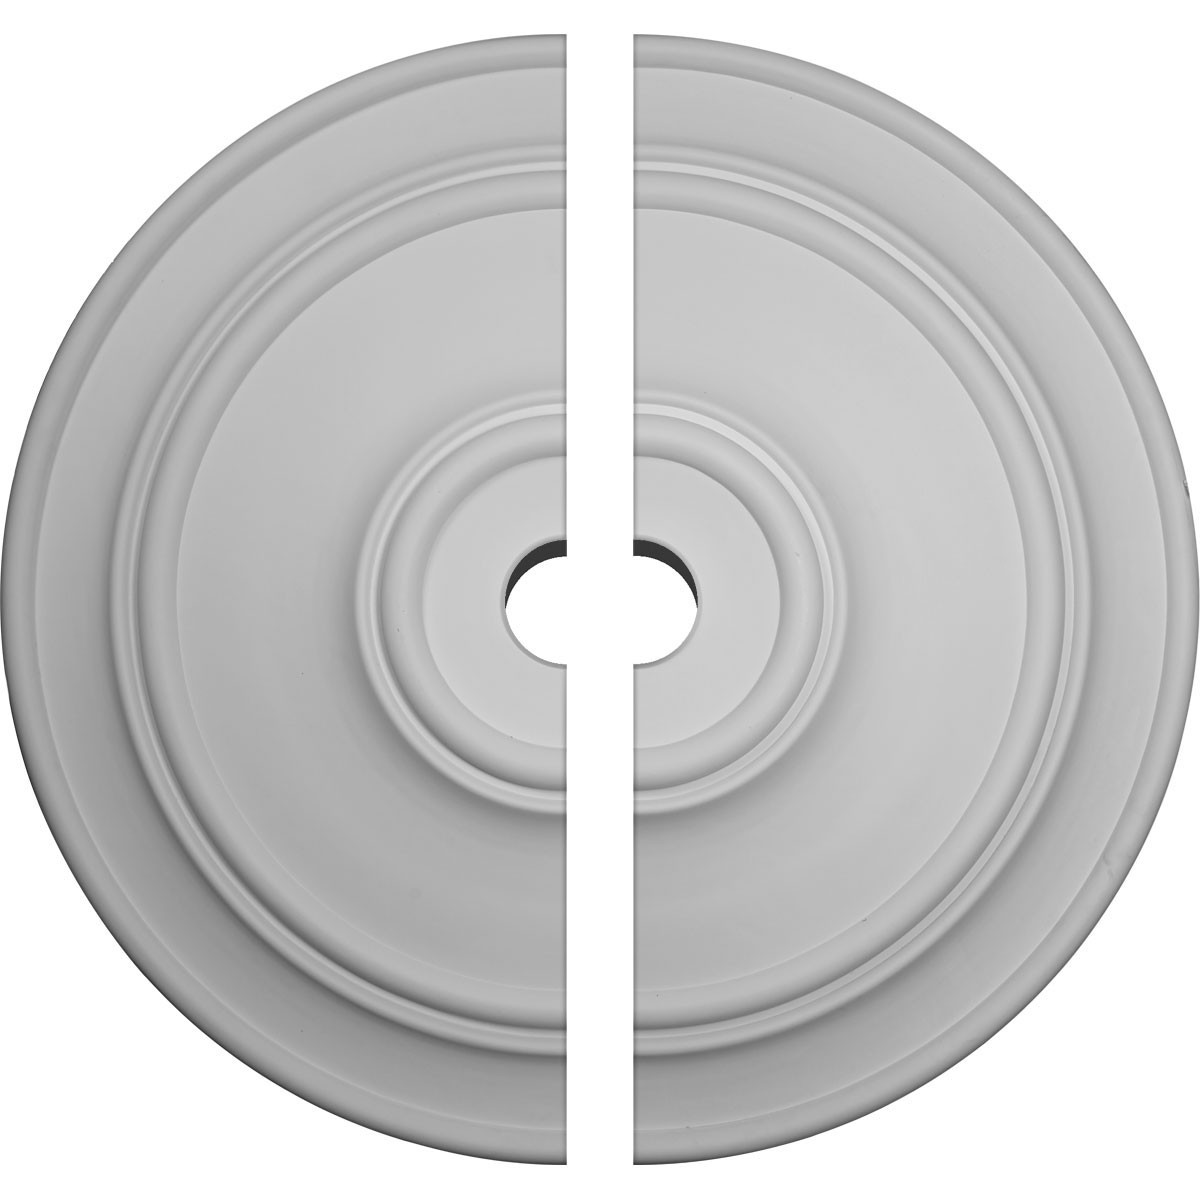 """EM-CM54TCL2-06000 - 54""""OD x 6""""ID x 4 7/8""""P Large Classic Ceiling Medallion, Two Piece (Fits Canopies up to 13 1/2"""")"""